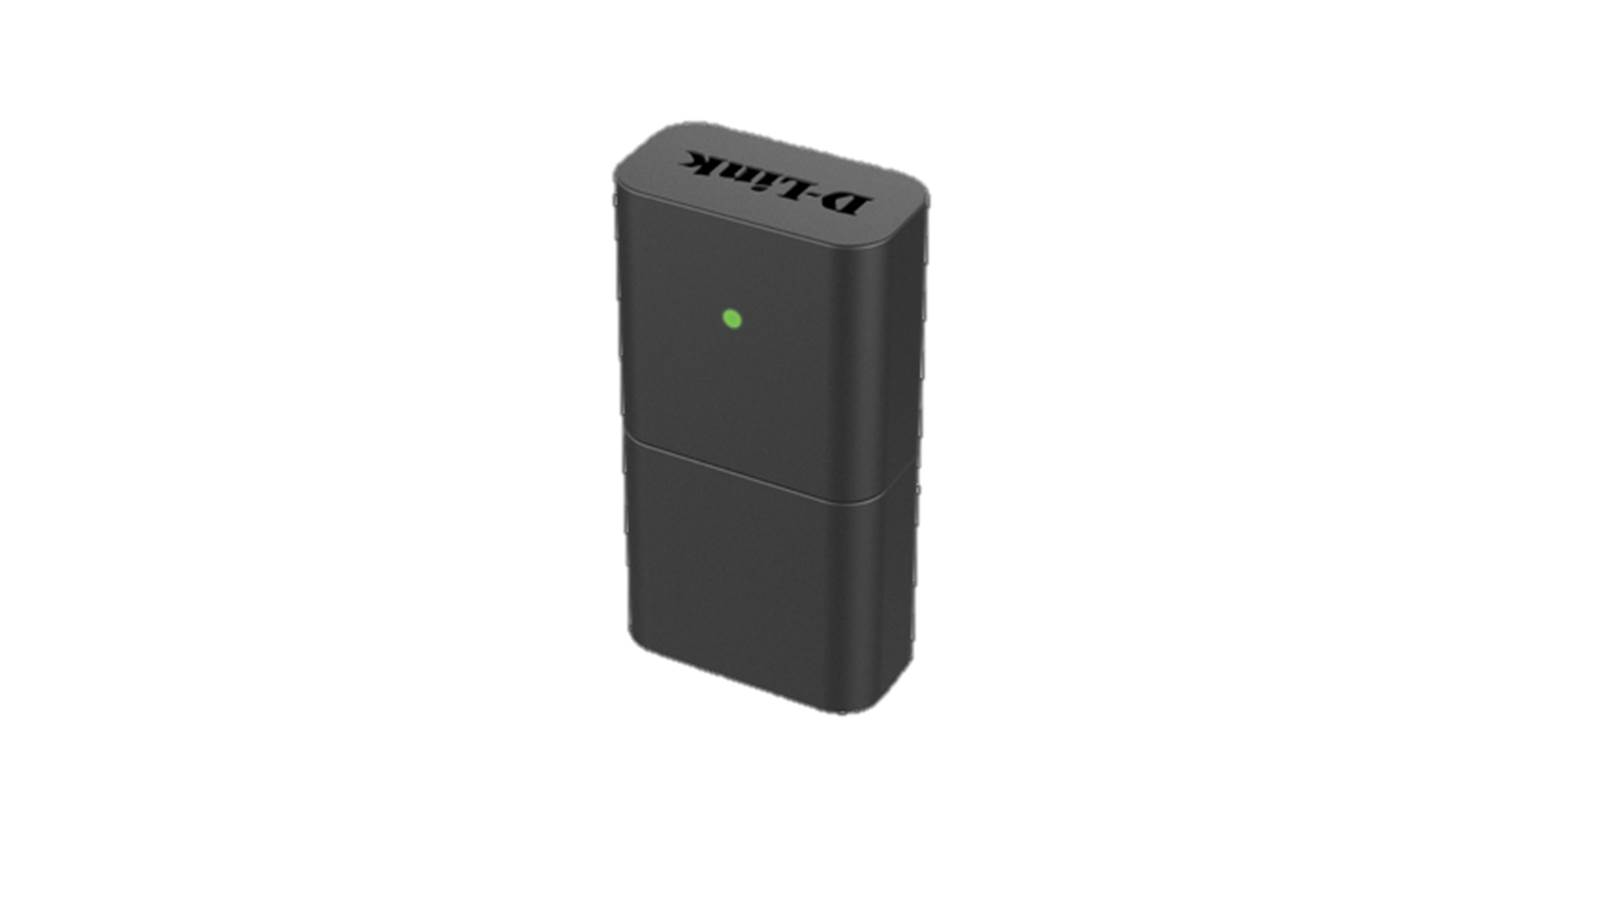 D LINK DWA 131 WIRELESS N NANO USB ADAPTER DRIVERS FOR WINDOWS DOWNLOAD